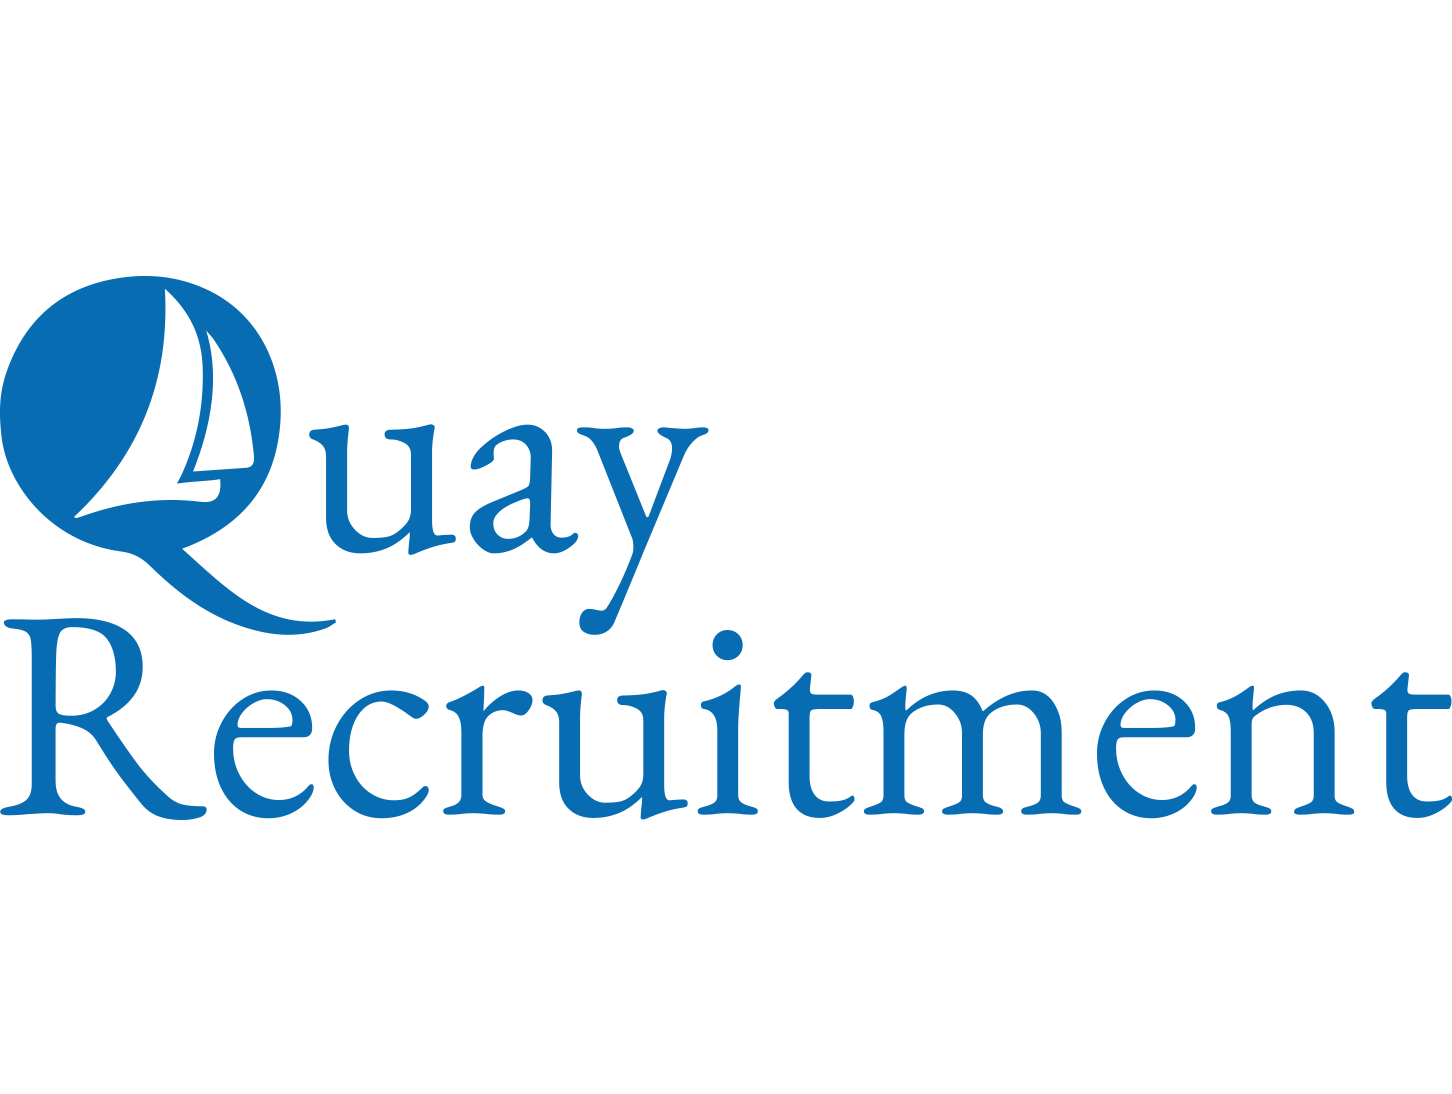 Quay Recruitment Logo